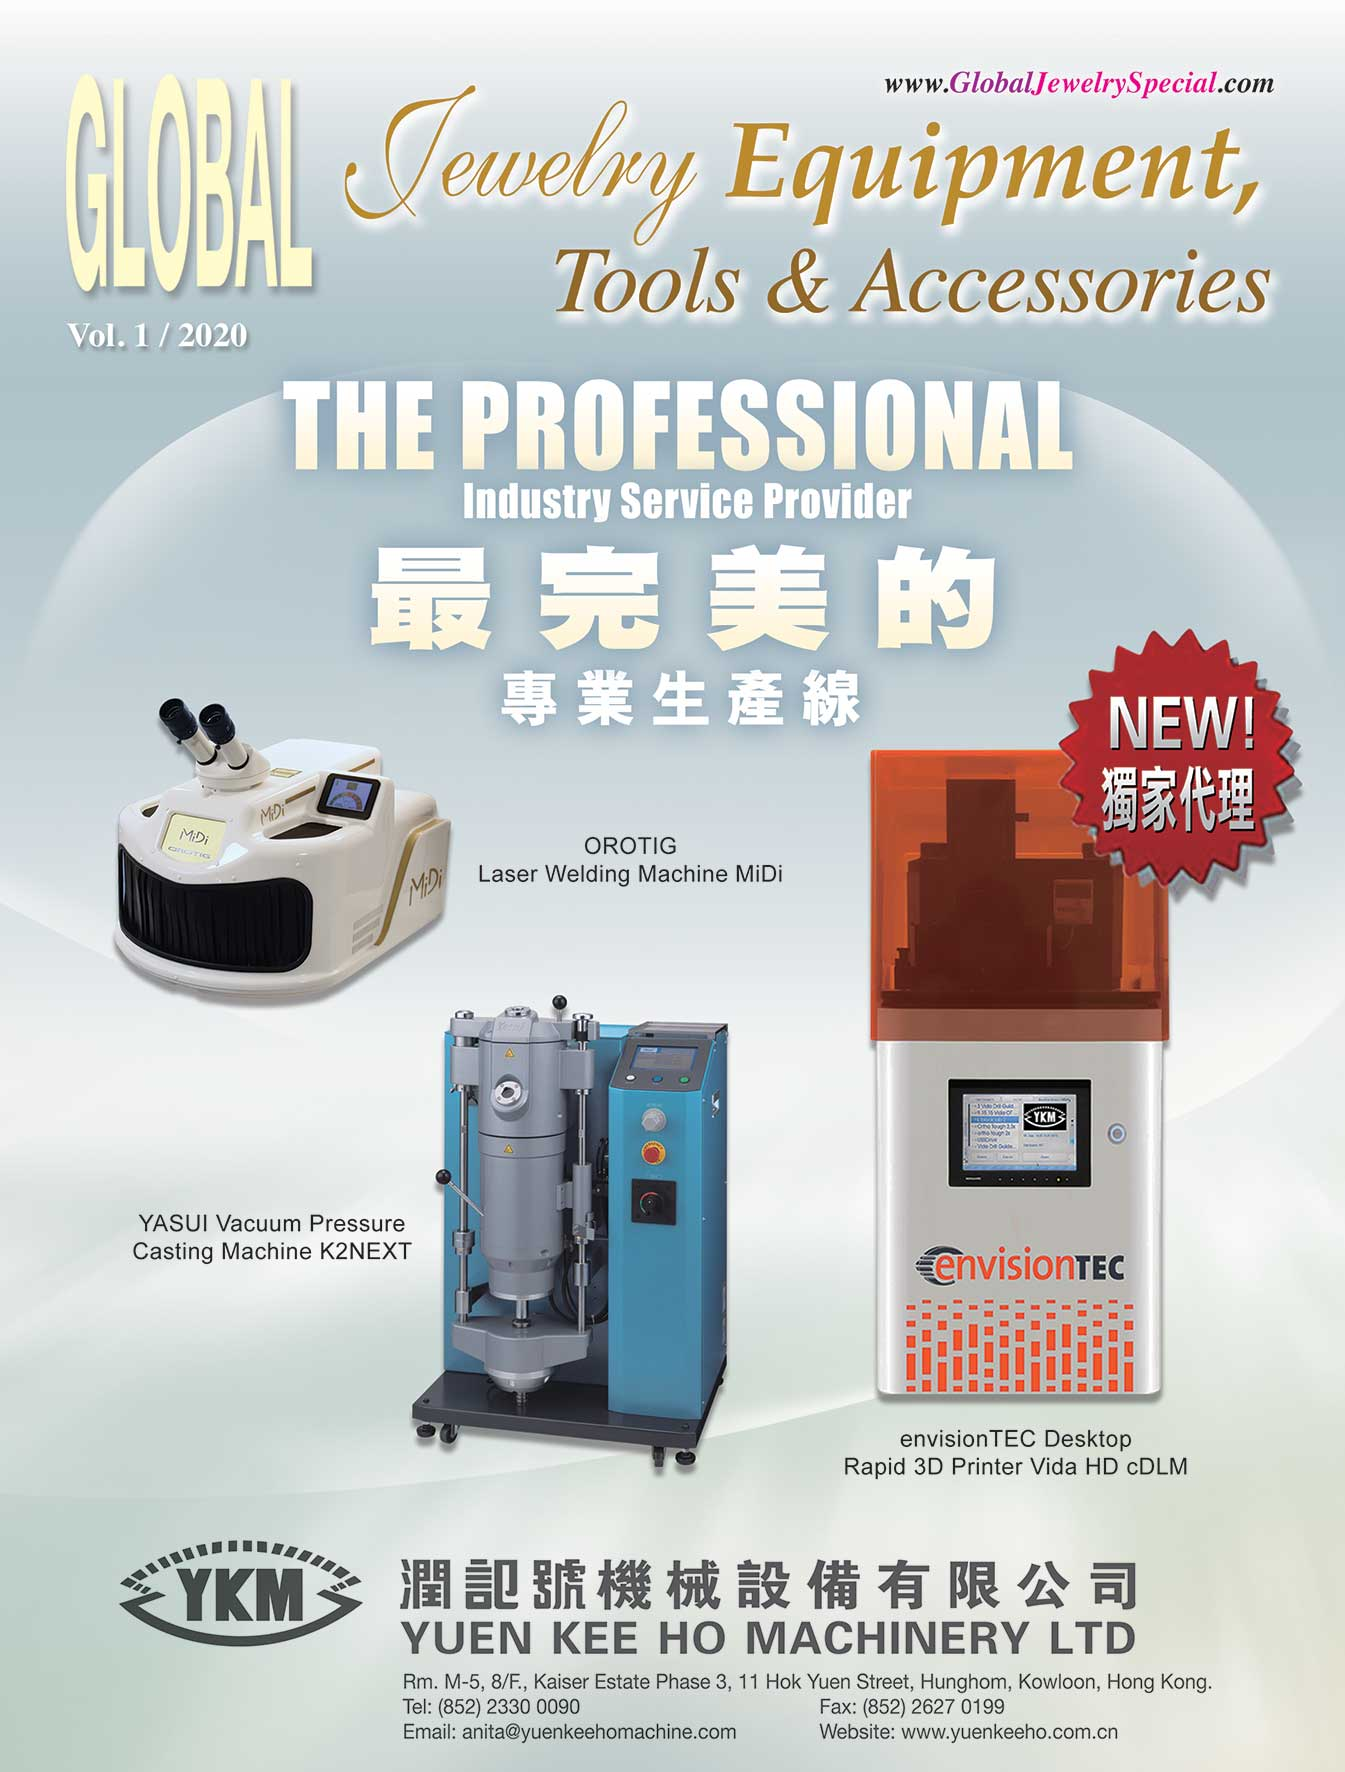 Global Equipment, Tools & Accessories